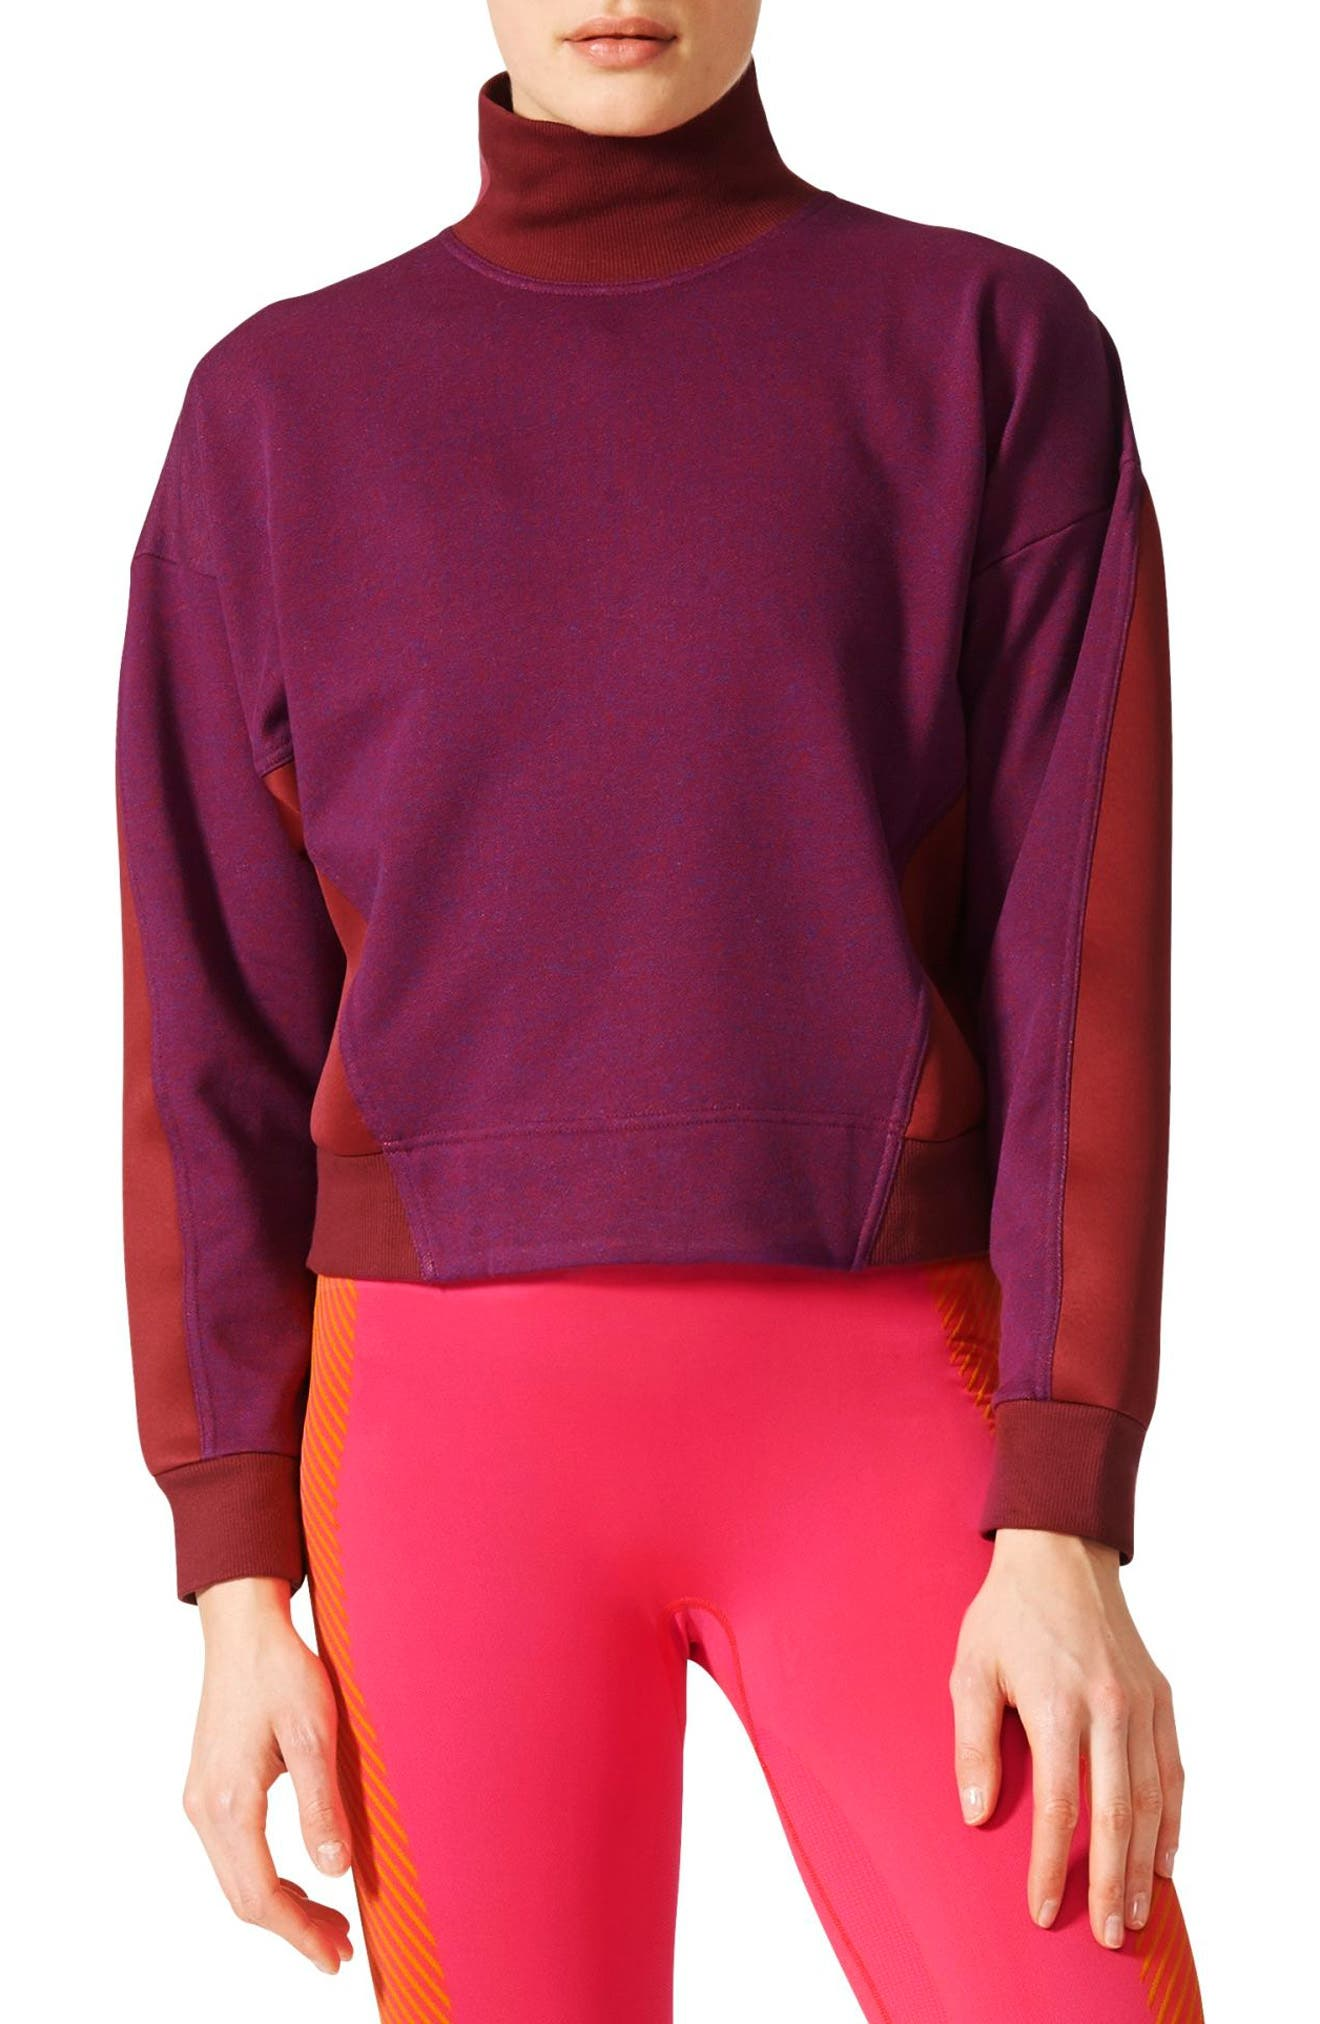 Yoga Turtleneck Sweatshirt,                             Main thumbnail 1, color,                             599